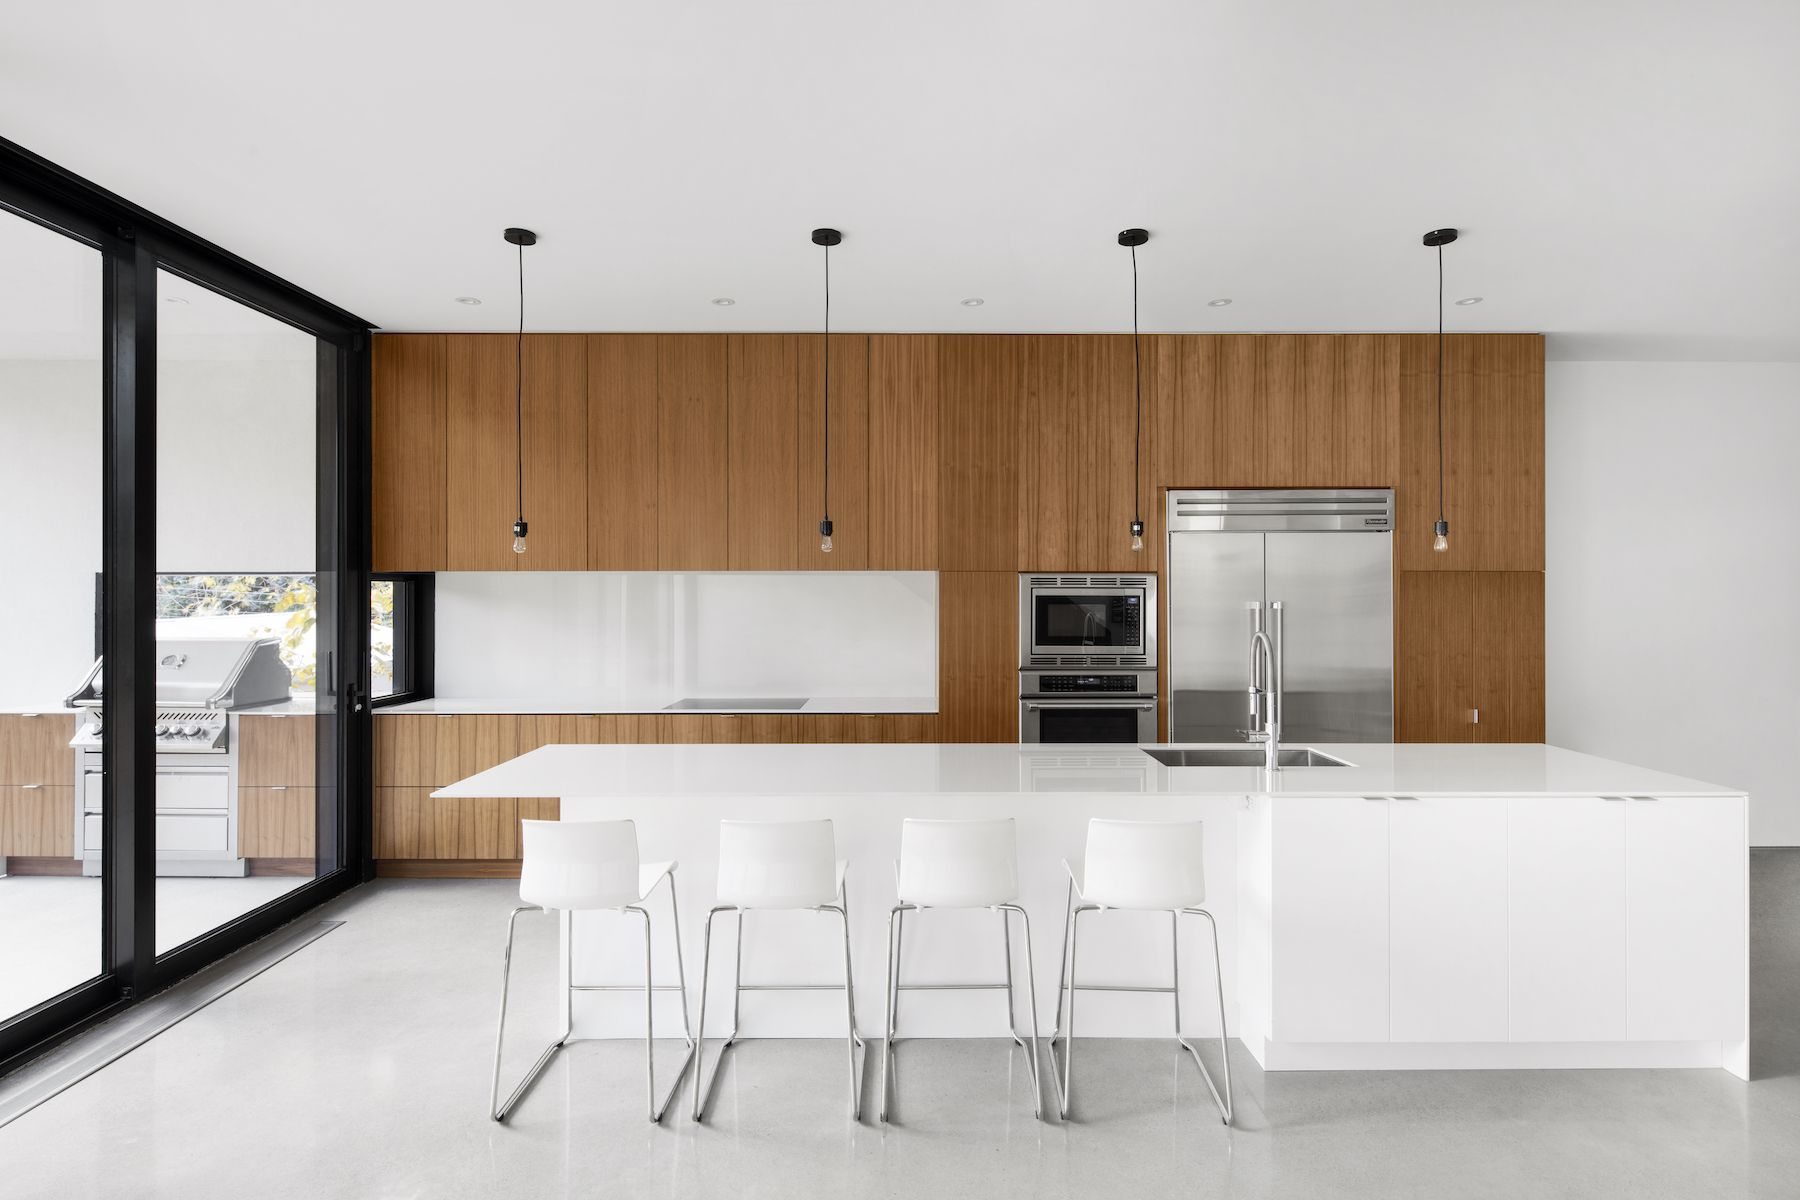 St avenue residence kitchens kitchen dining and interiors